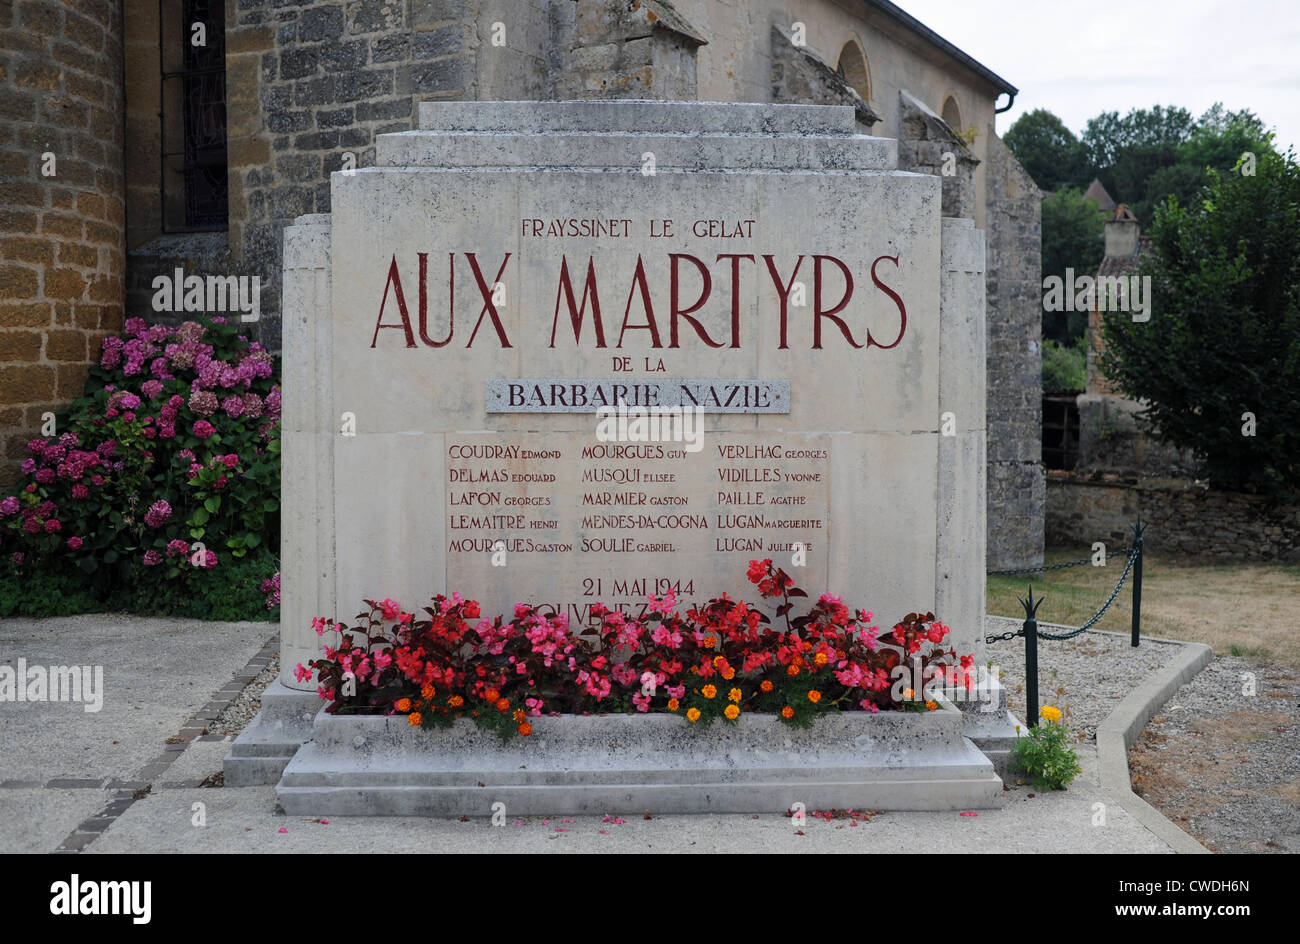 Memorial to the teacher and schoolchildren who were murdered by the Germans in Second World War at Frayssinet le Stock Photo